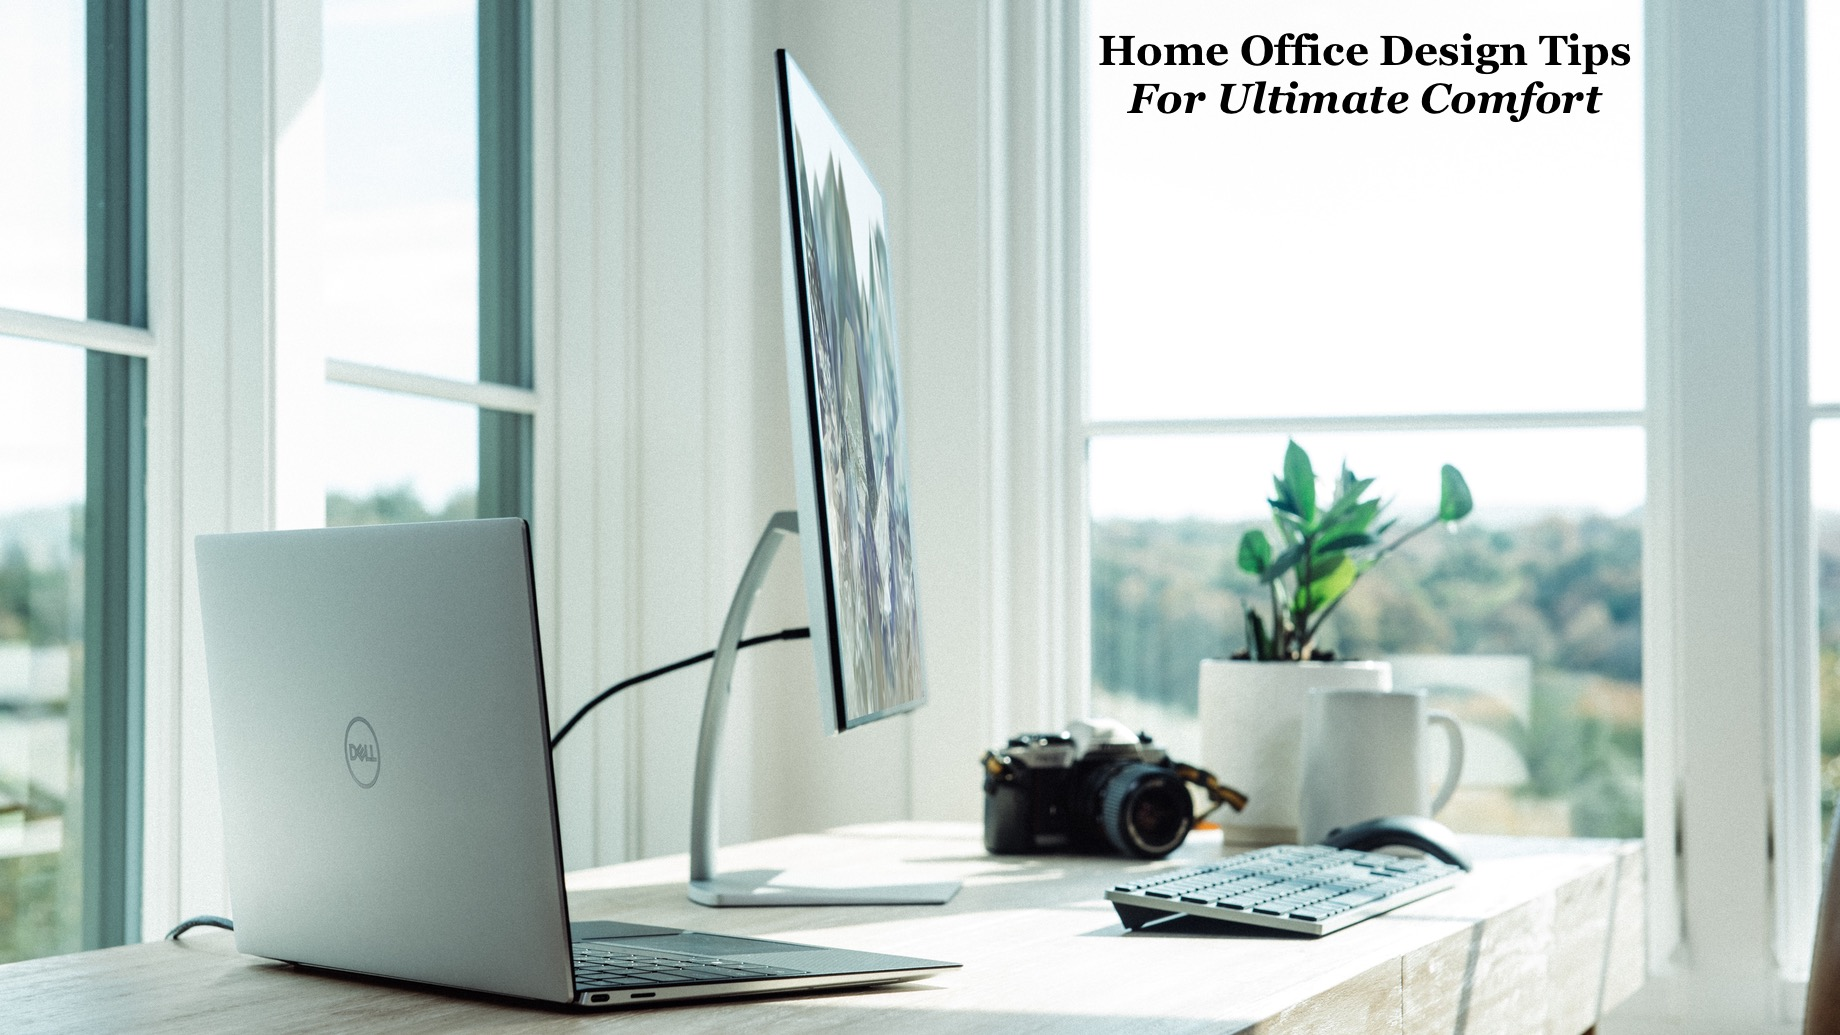 Home Office Design Tips For Ultimate Comfort